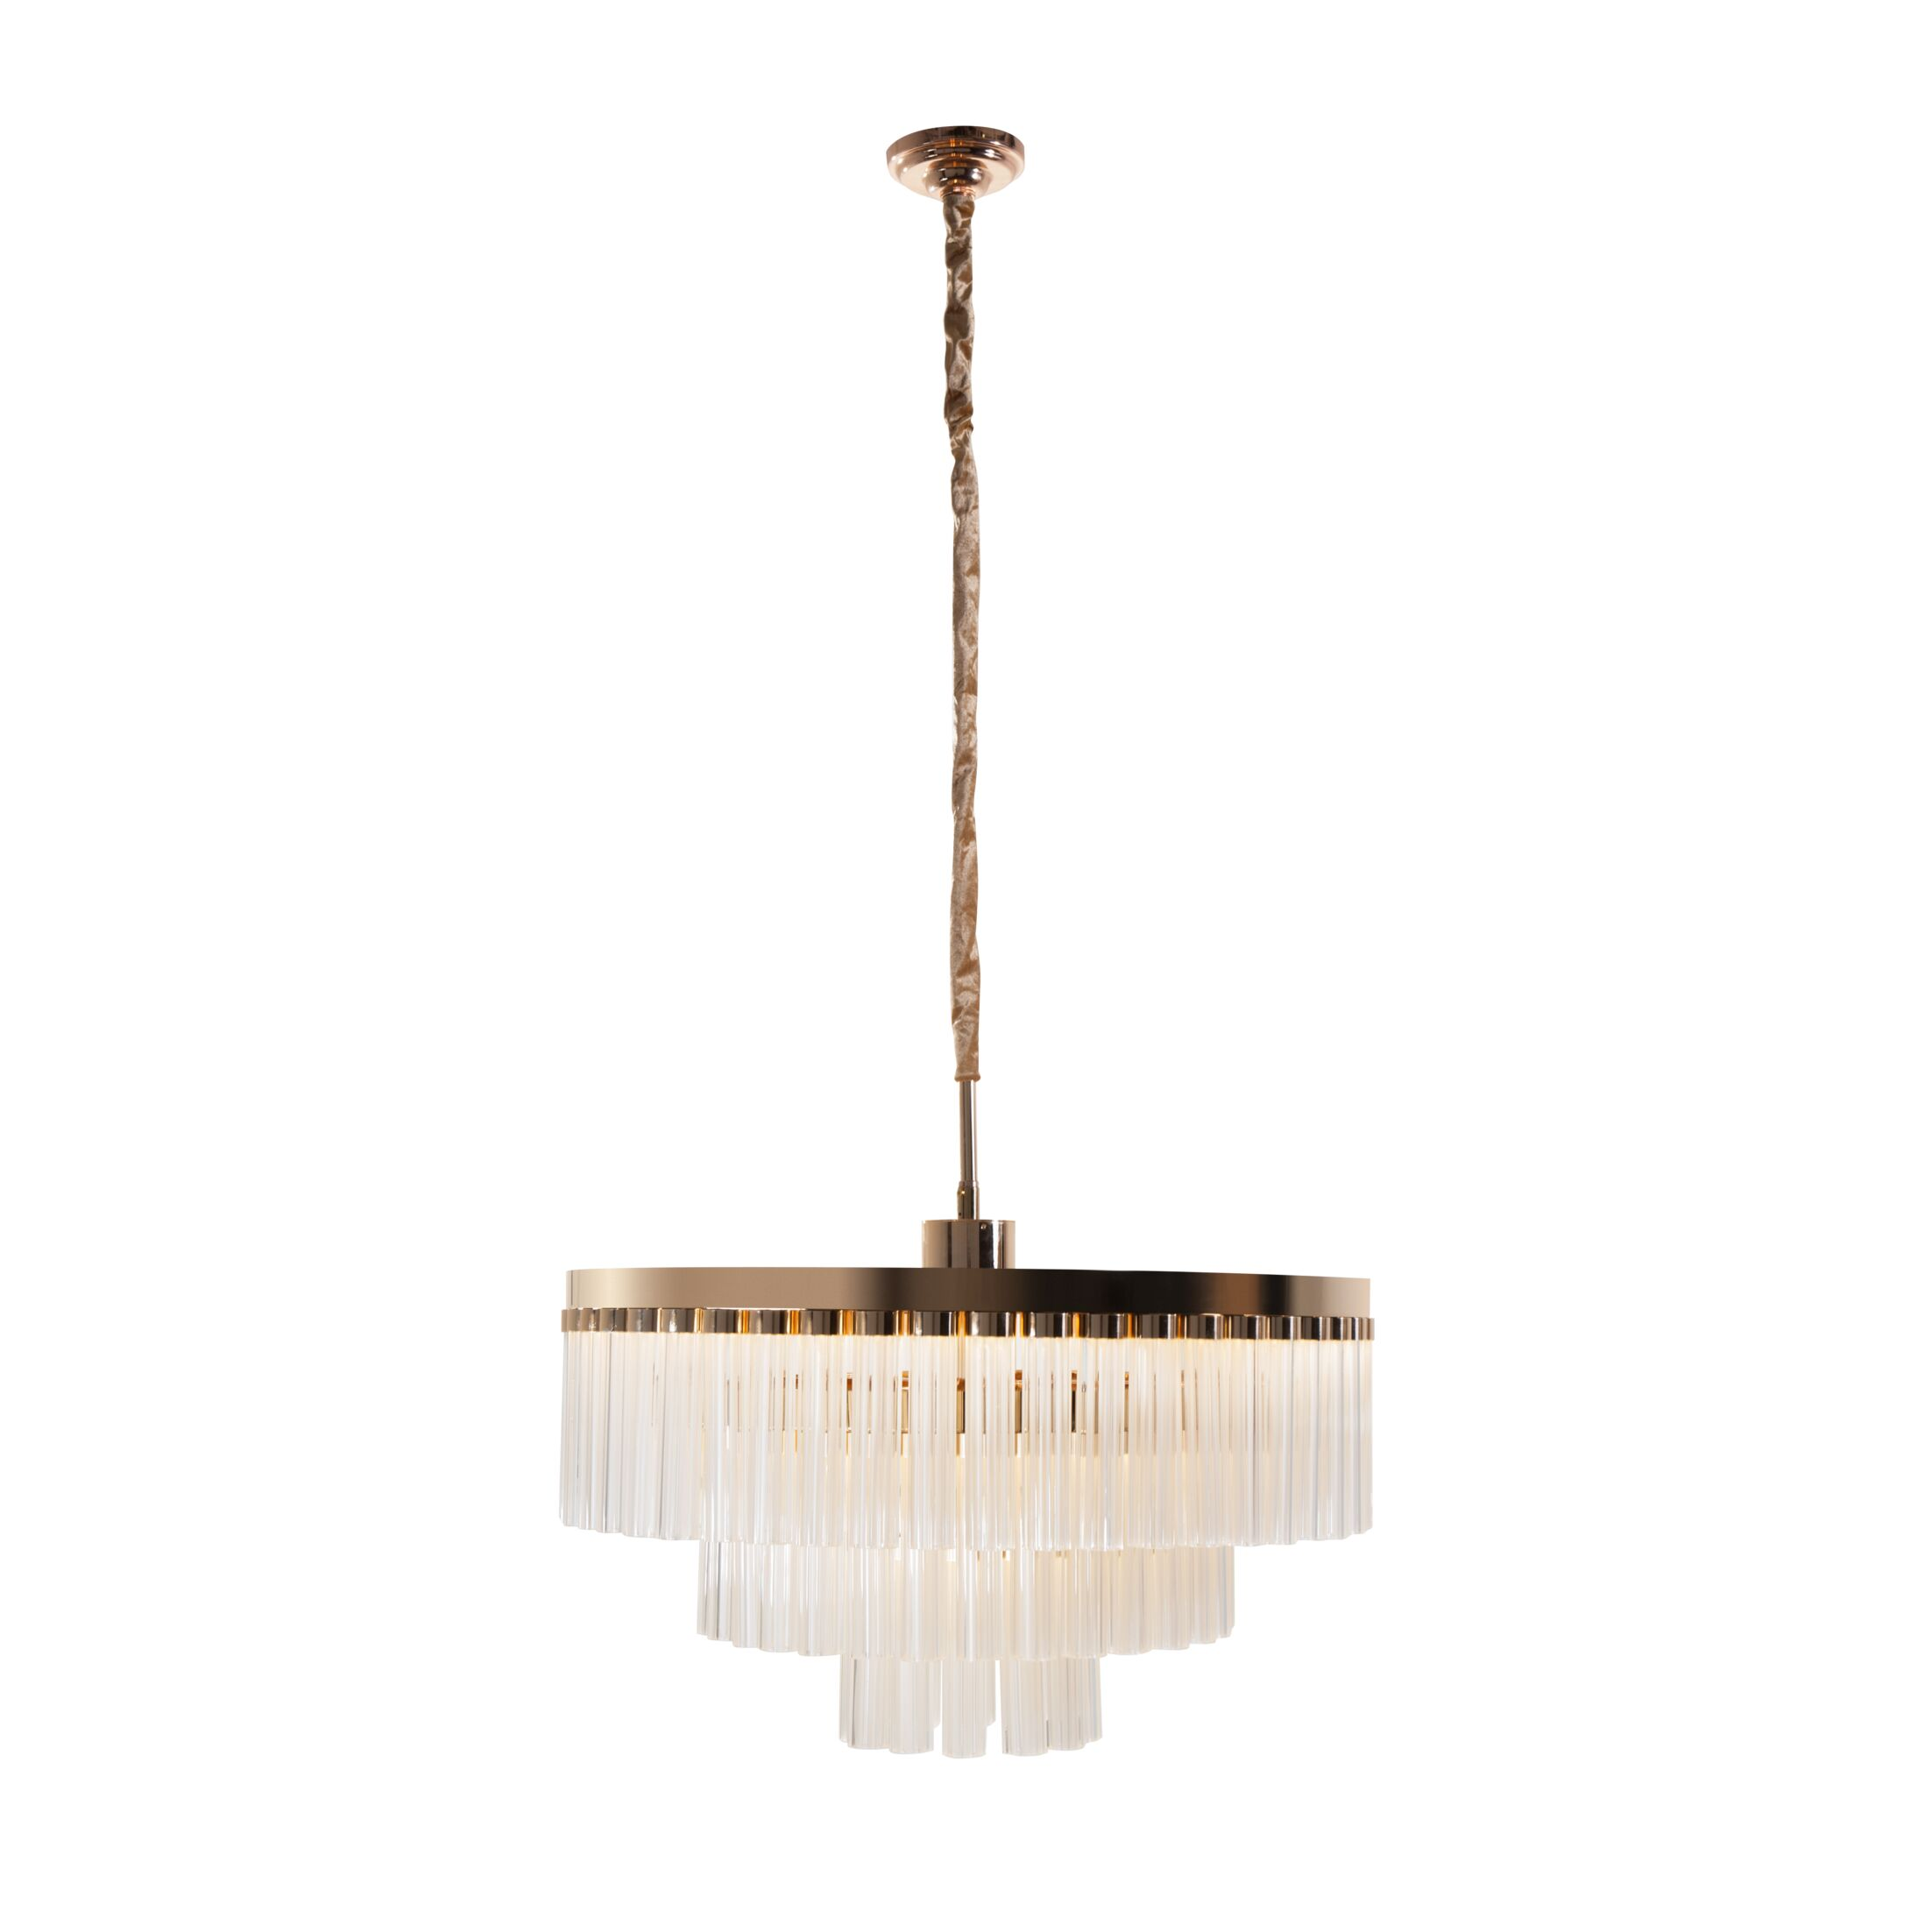 Alexandrina LED Drum Chandelier